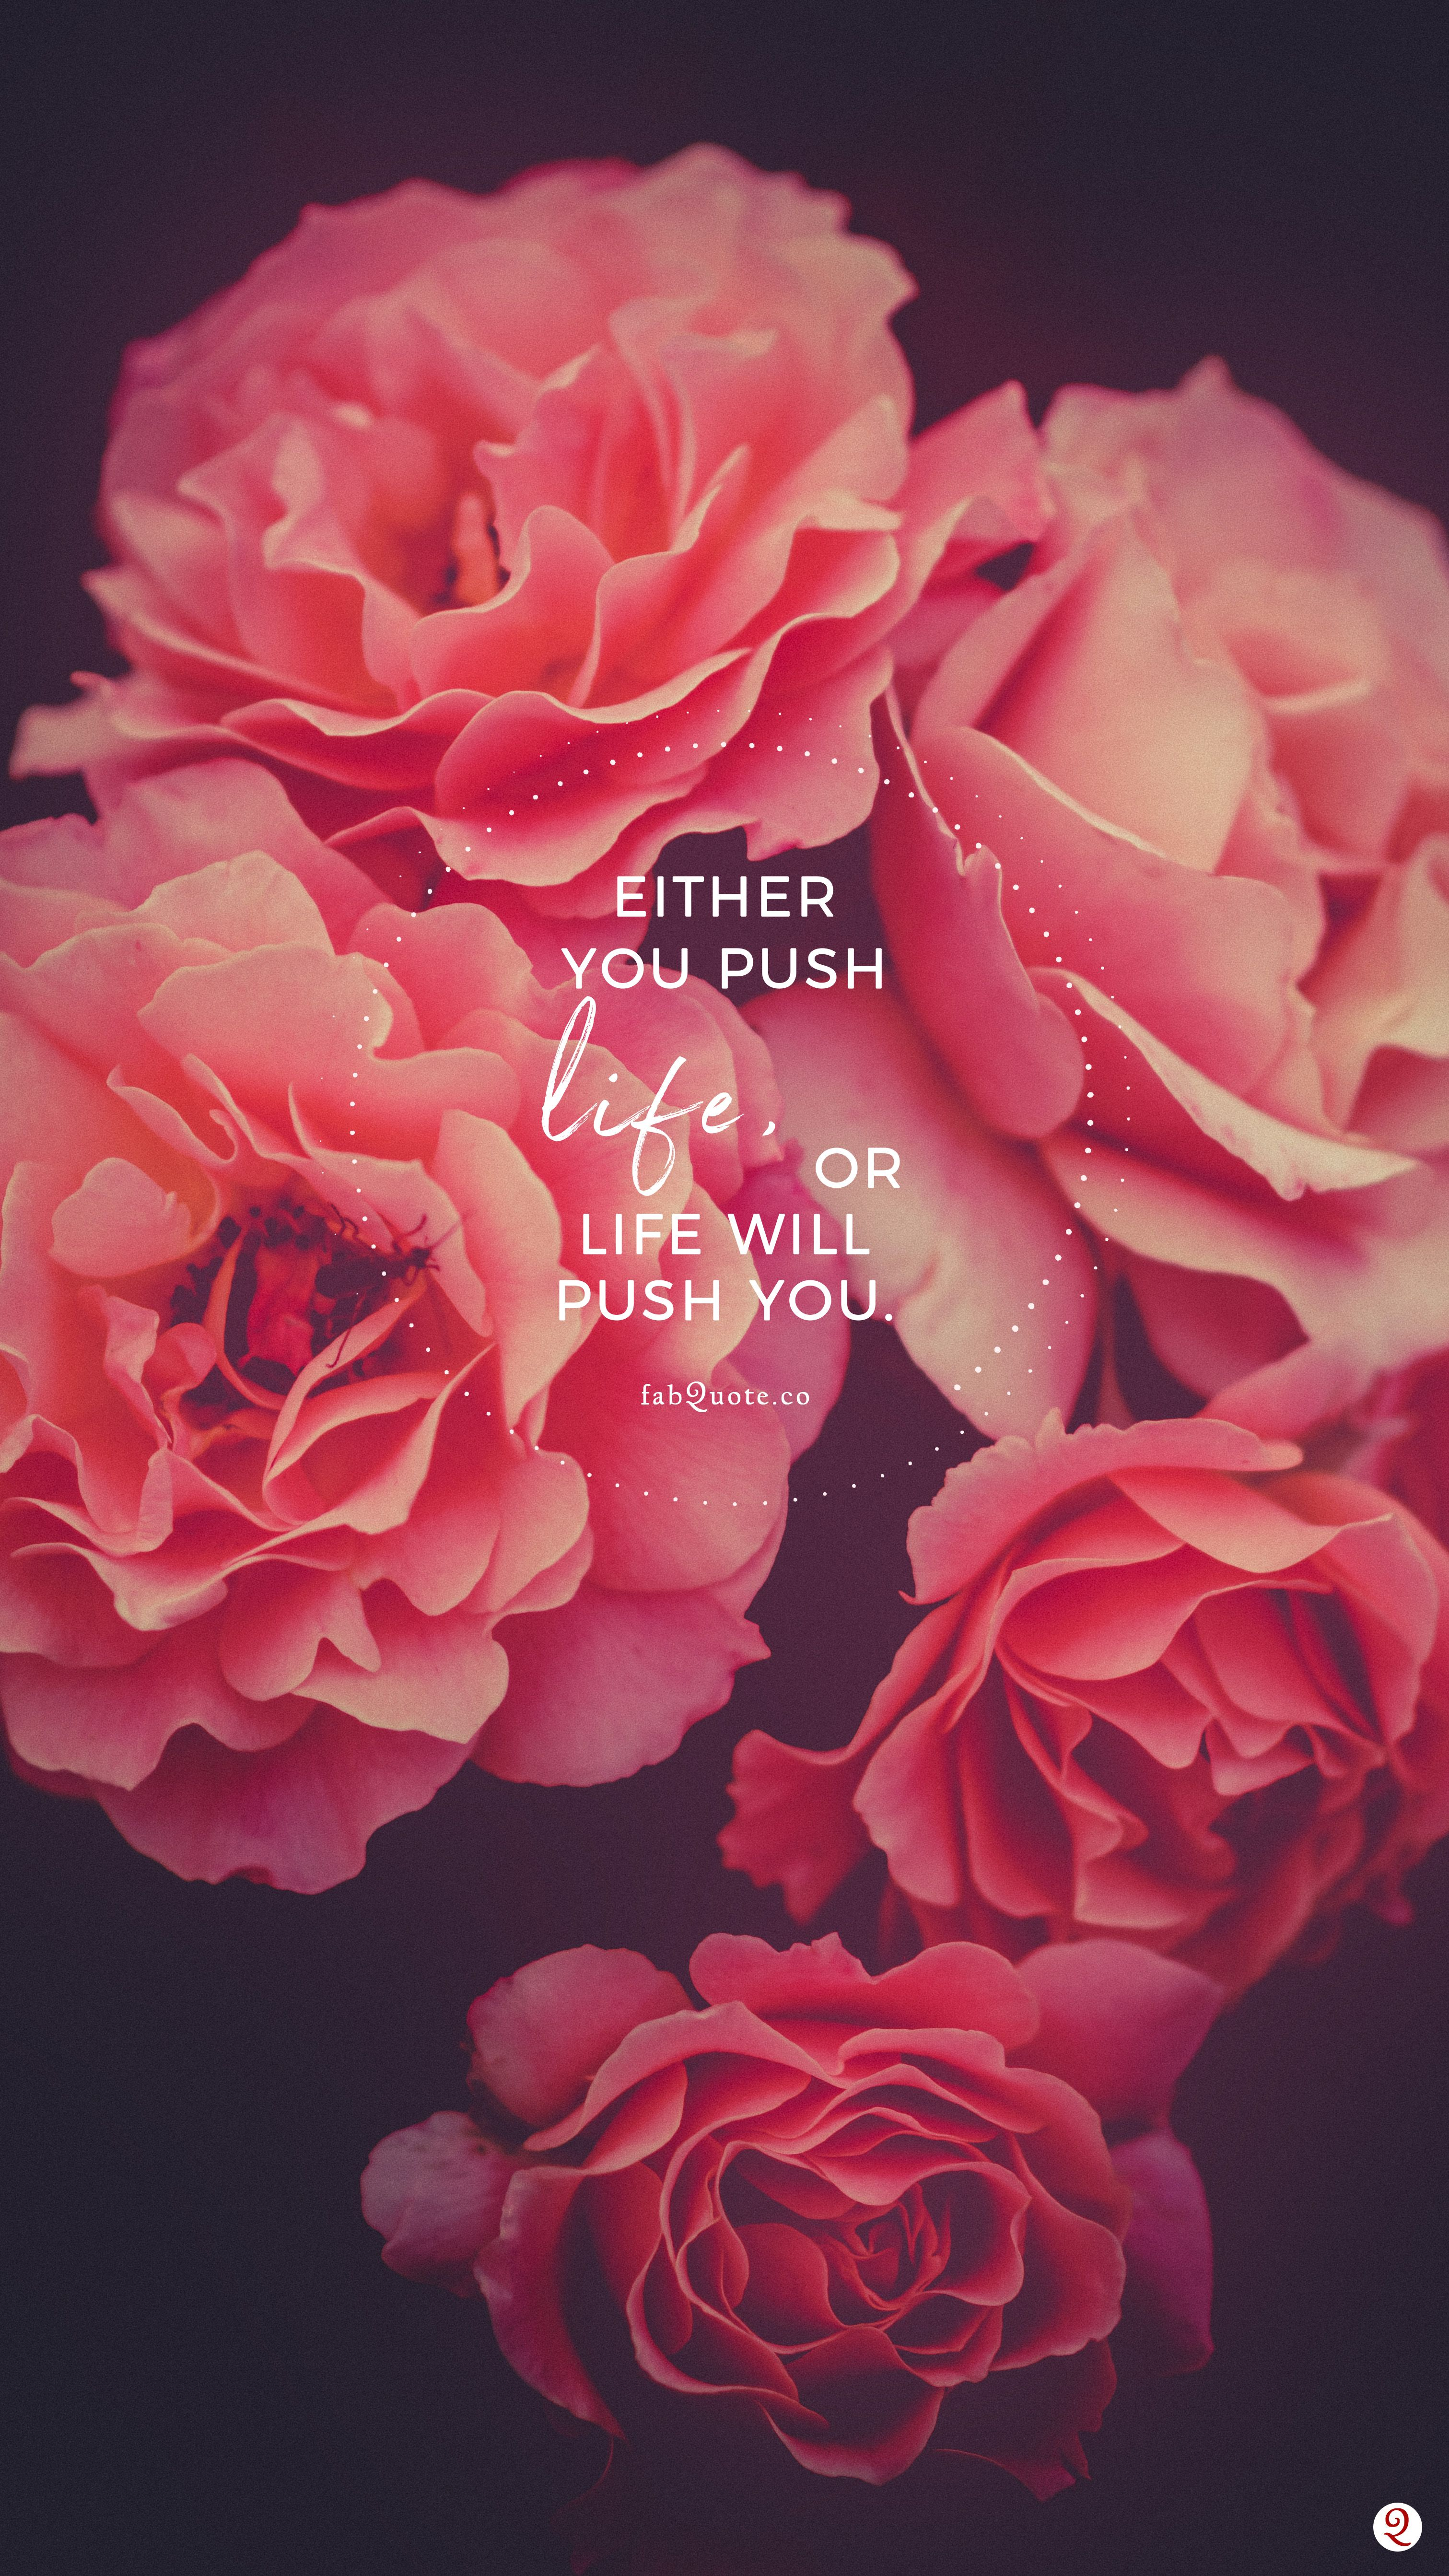 Push Life Flower Background Wallpaper Aesthetic Iphone Wallpaper Cute Wallpapers Coolest wallpaper flower with quotes